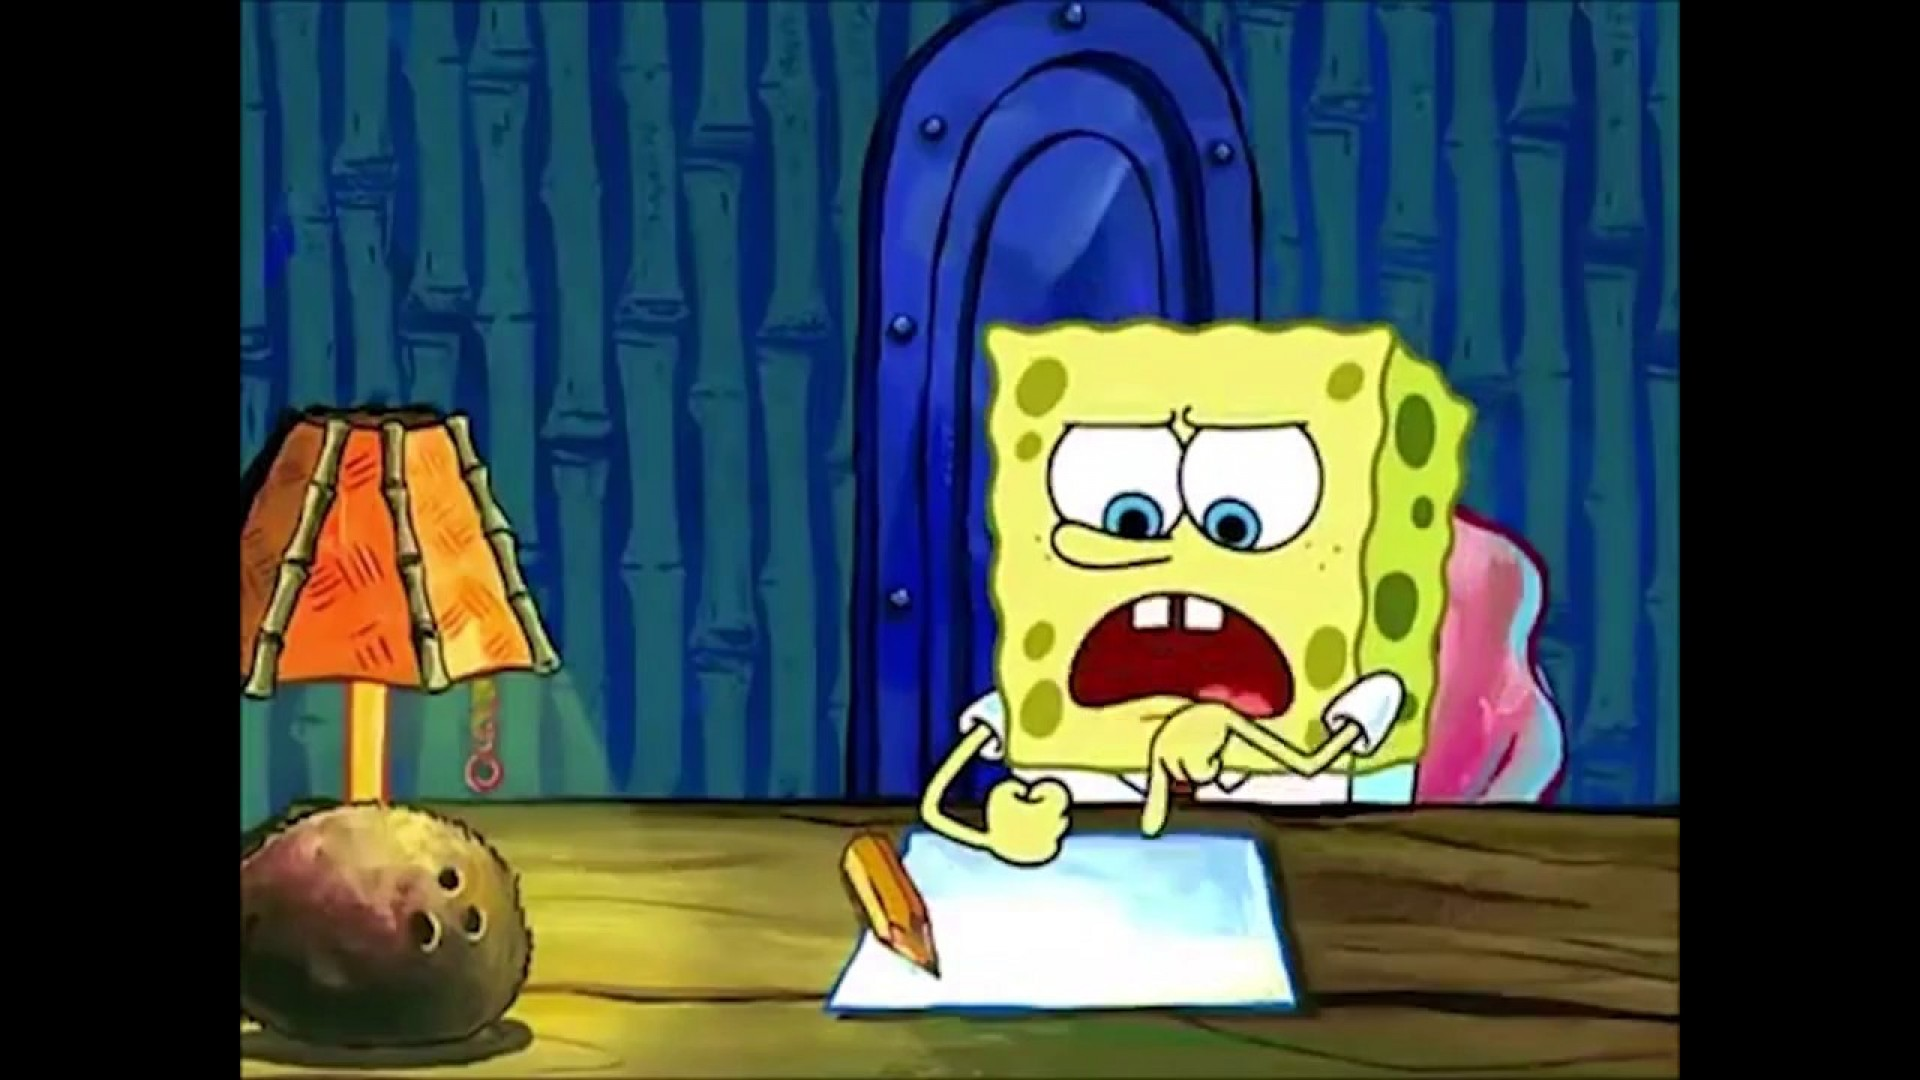 002 Essay Example Spongebob Spongebobs Youtube Maxresde Writing For Hours Rap The Font Meme Surprising Writes An Full Episode Generator Deleted Scene 1920